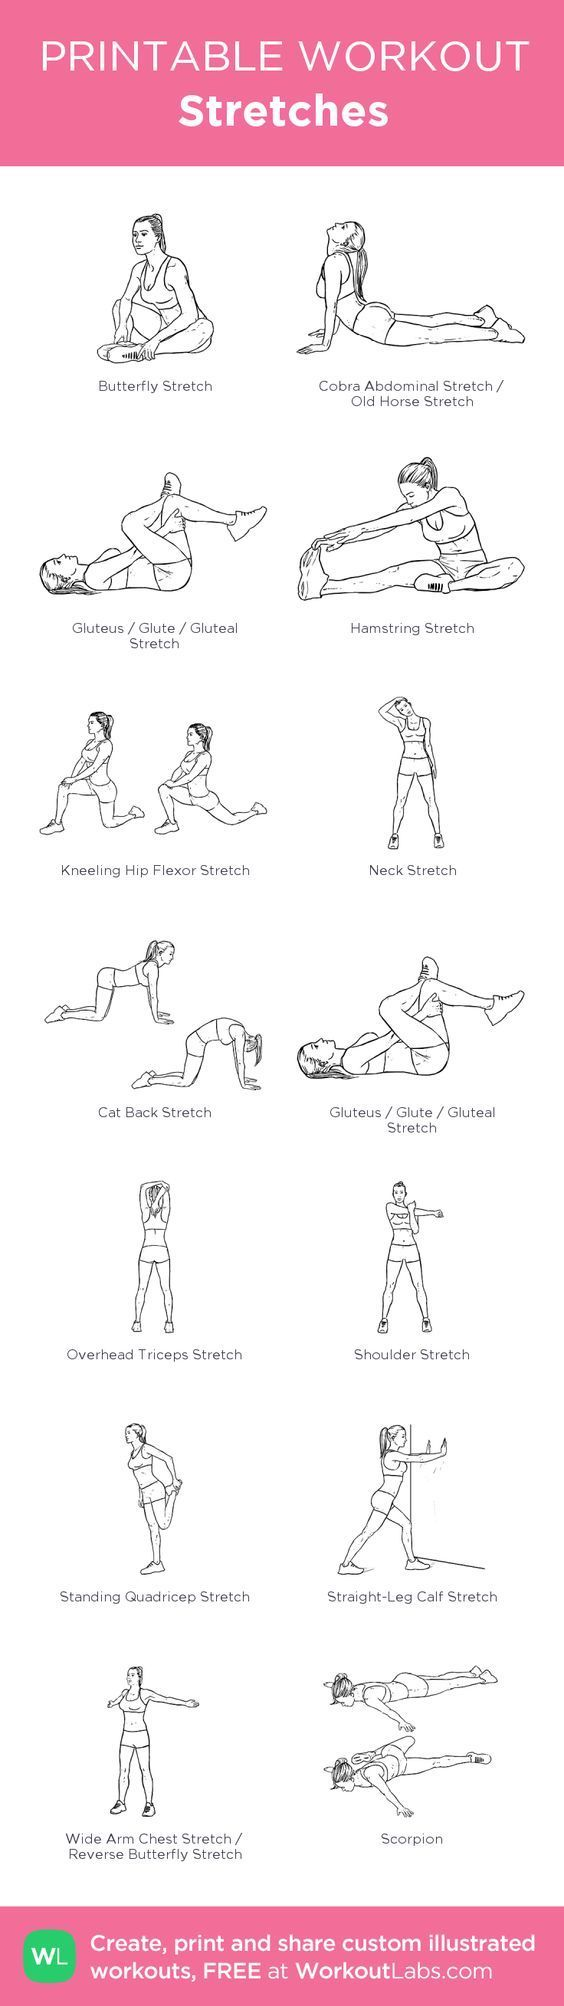 Stretches: my visual workout created at WorkoutLabs.com • Click through to customize and download as a FREE PDF! #customworkout: